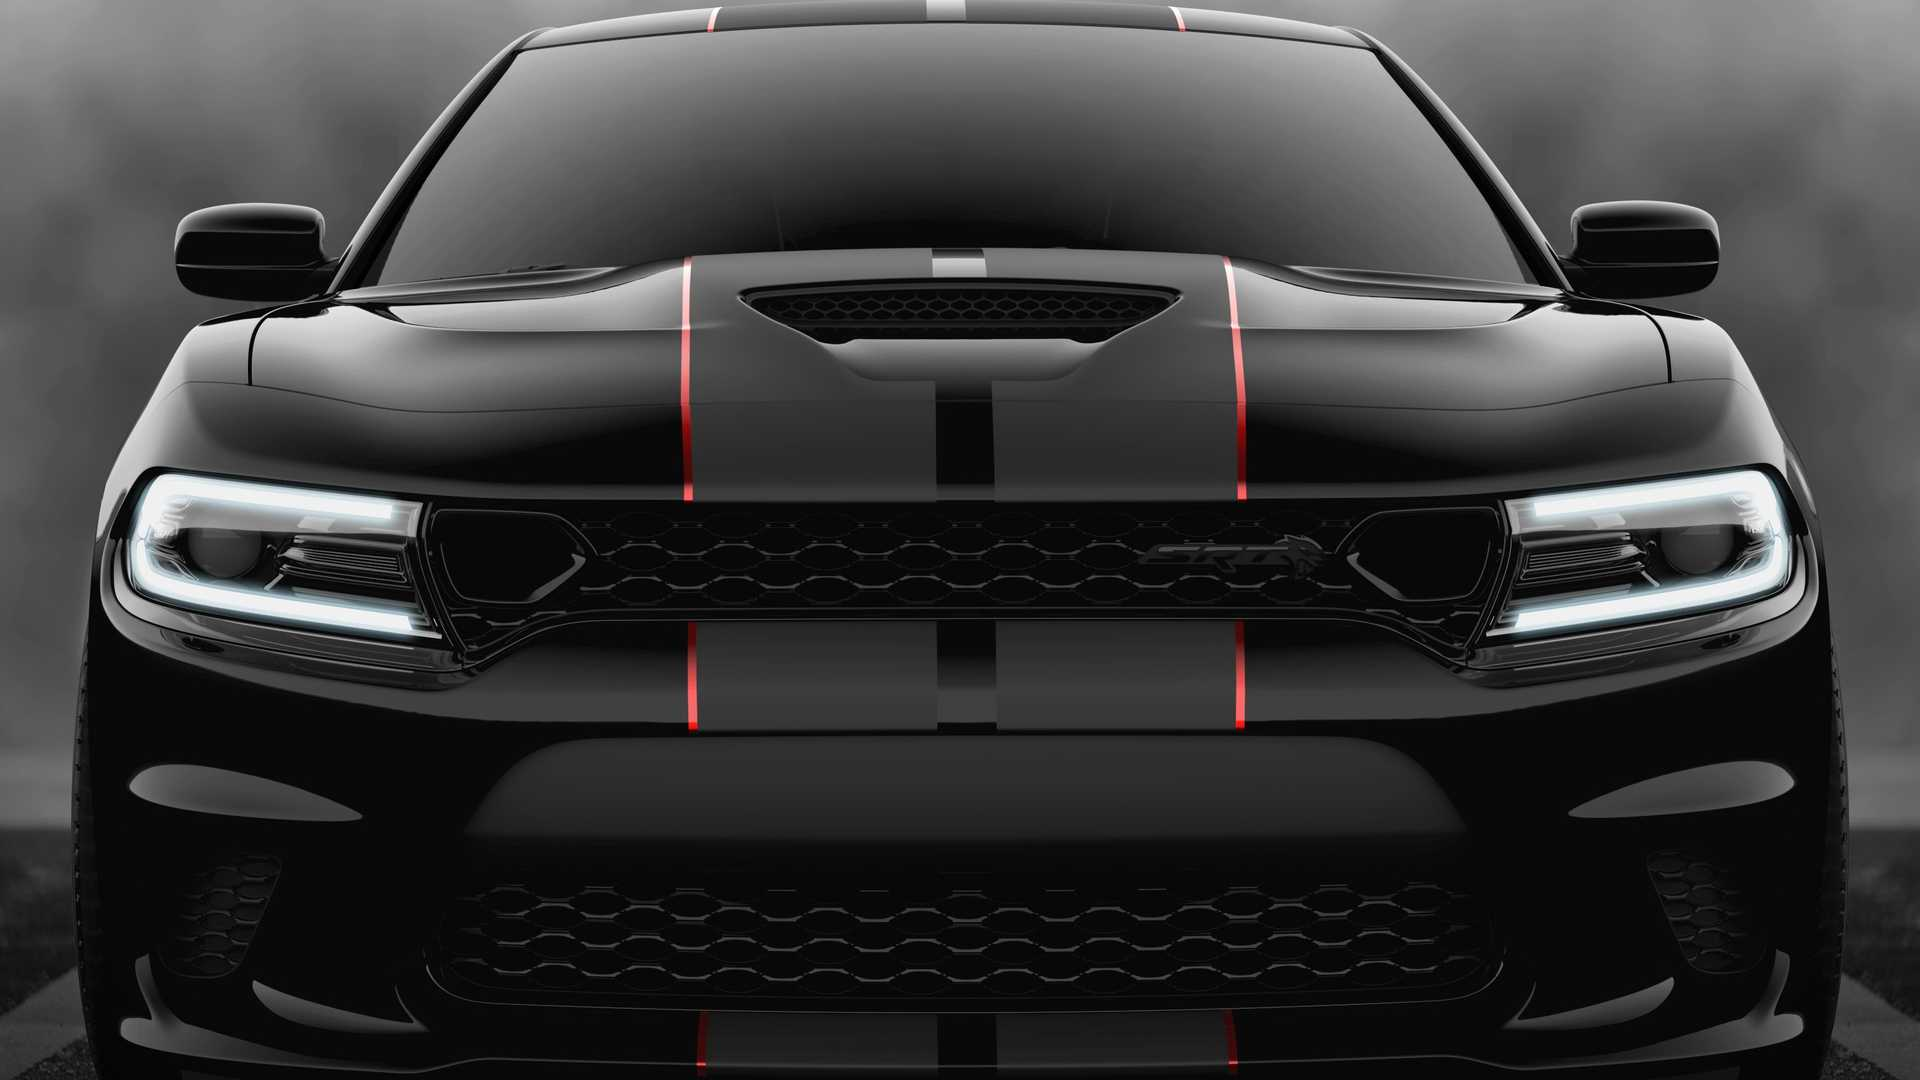 2019 Dodge Charger SRT Hellcat Octane Edition (Color: Pitch Black) Front Wallpapers (9)